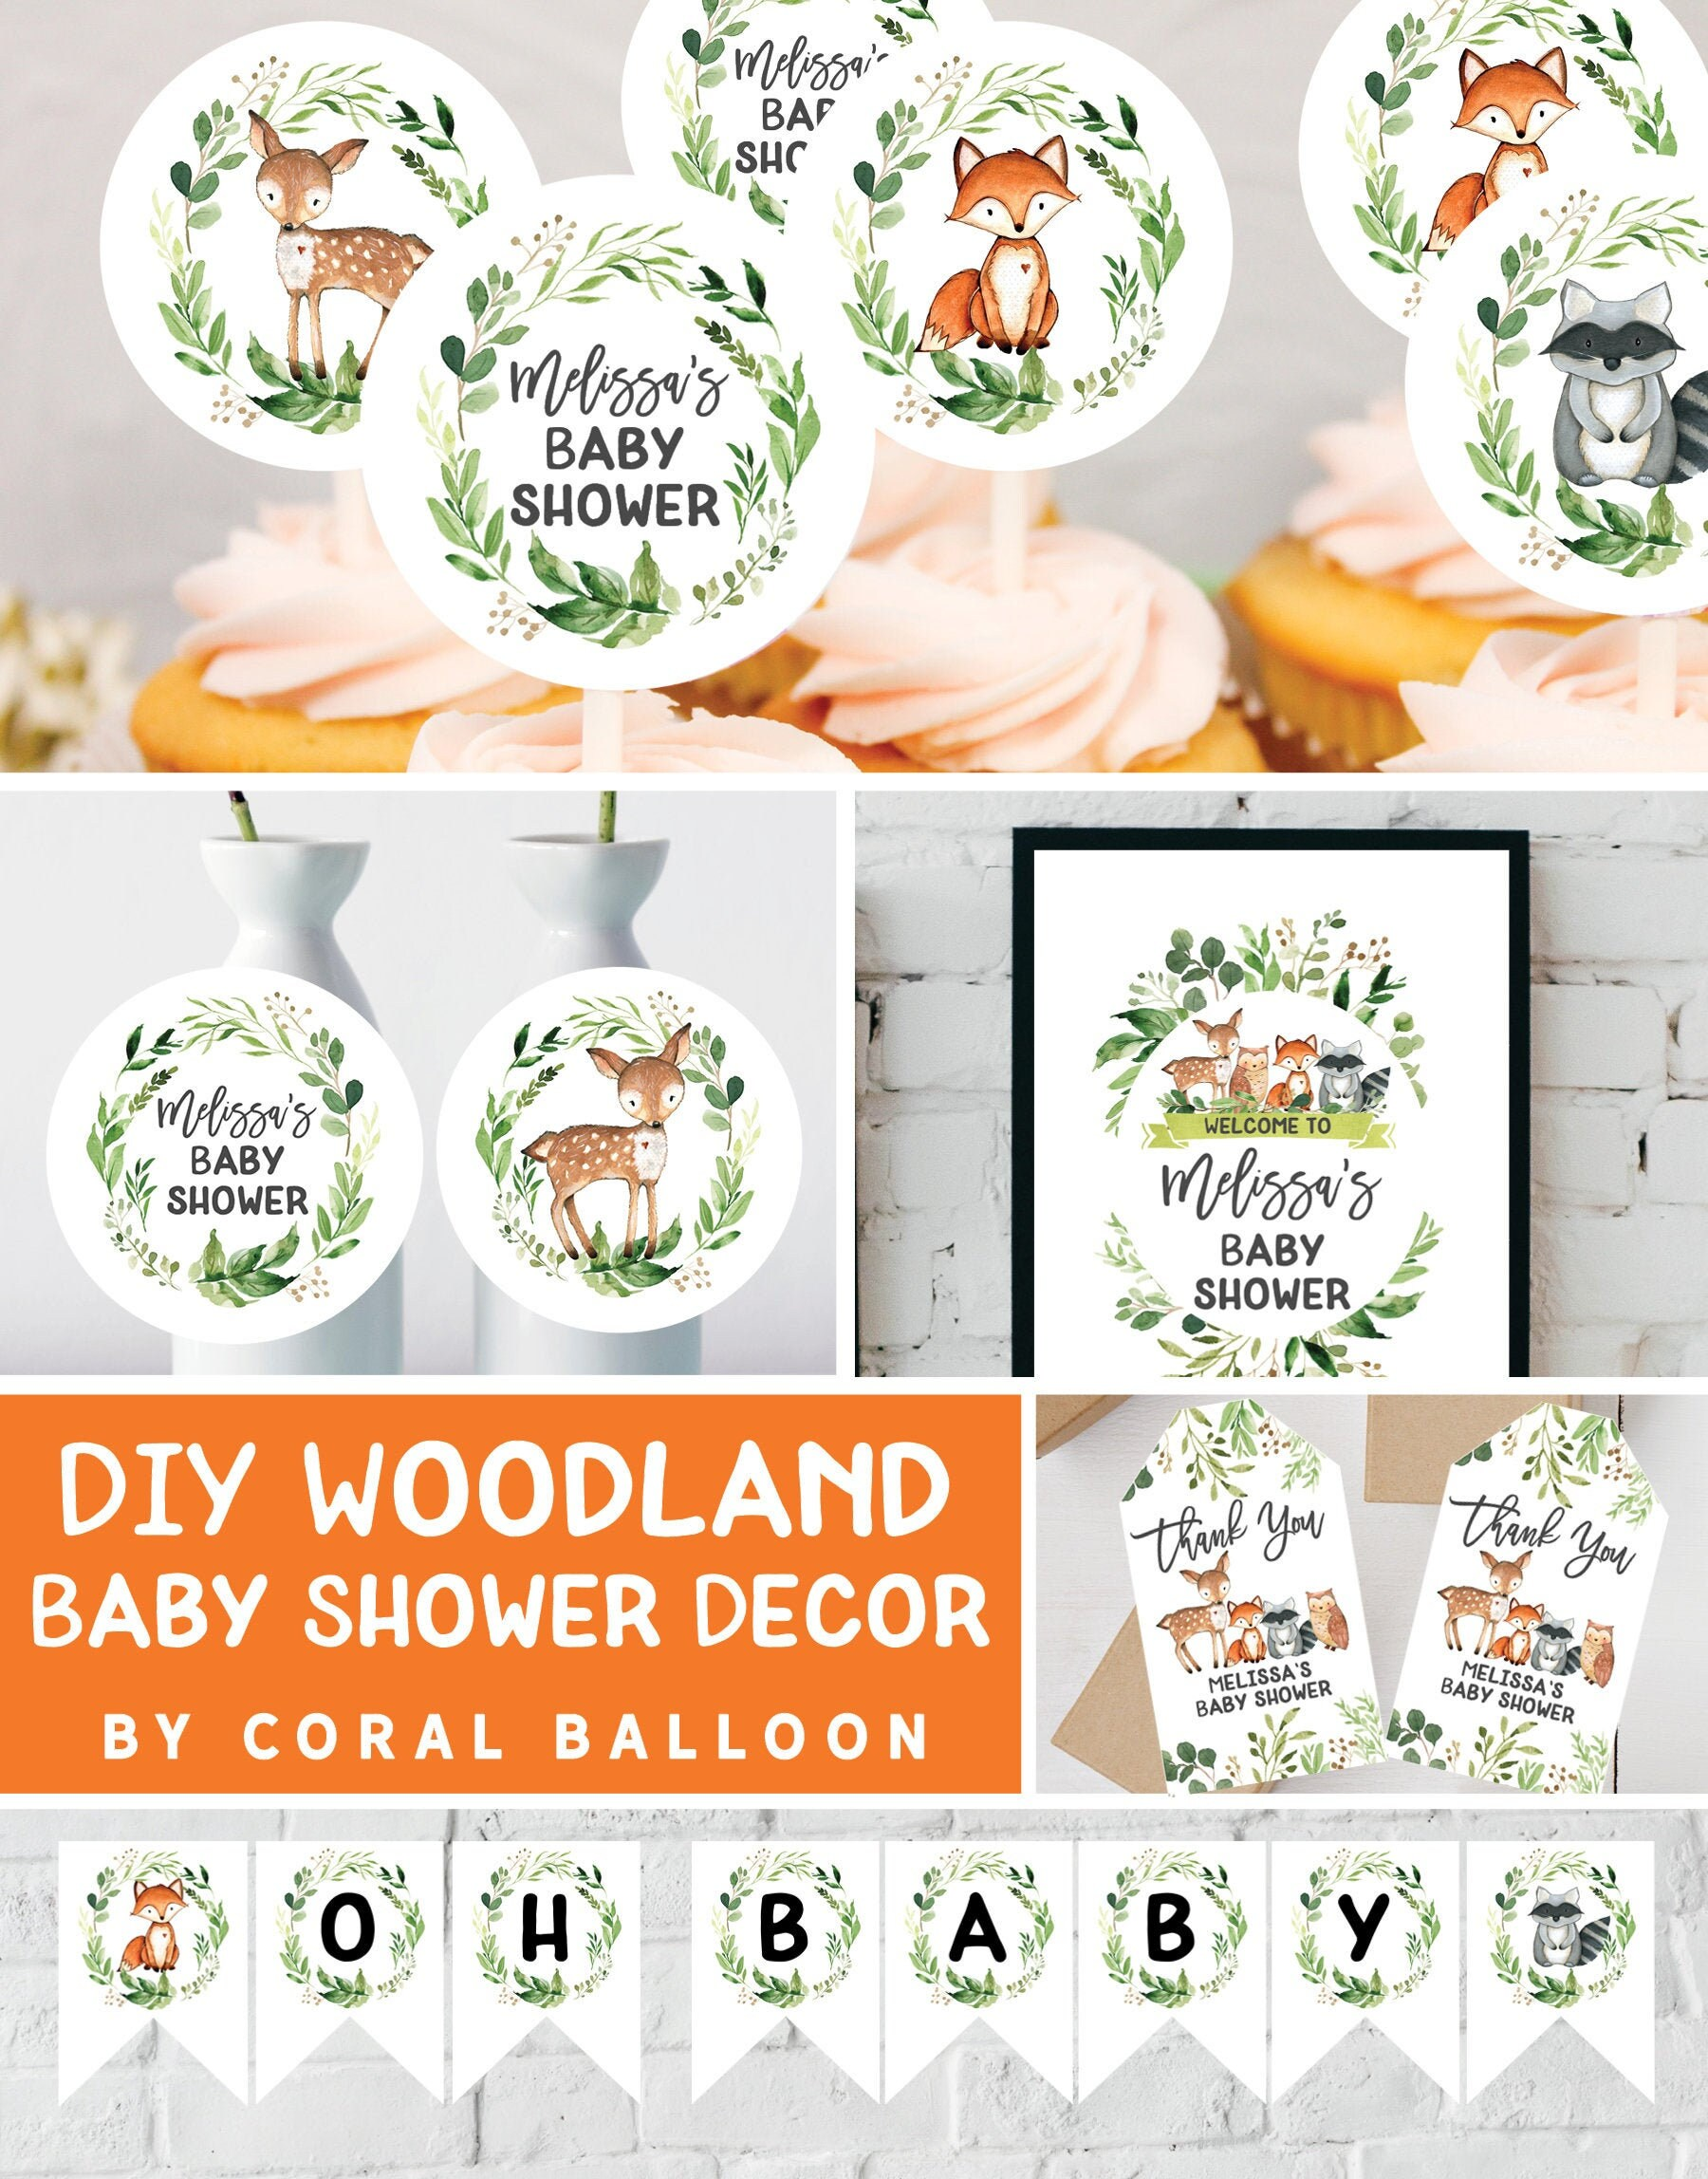 Woodland Baby Shower Decorations Banner Cupcake Toppers Games Centerpieces Welcome Sign Favor Tags Food Tents Printable